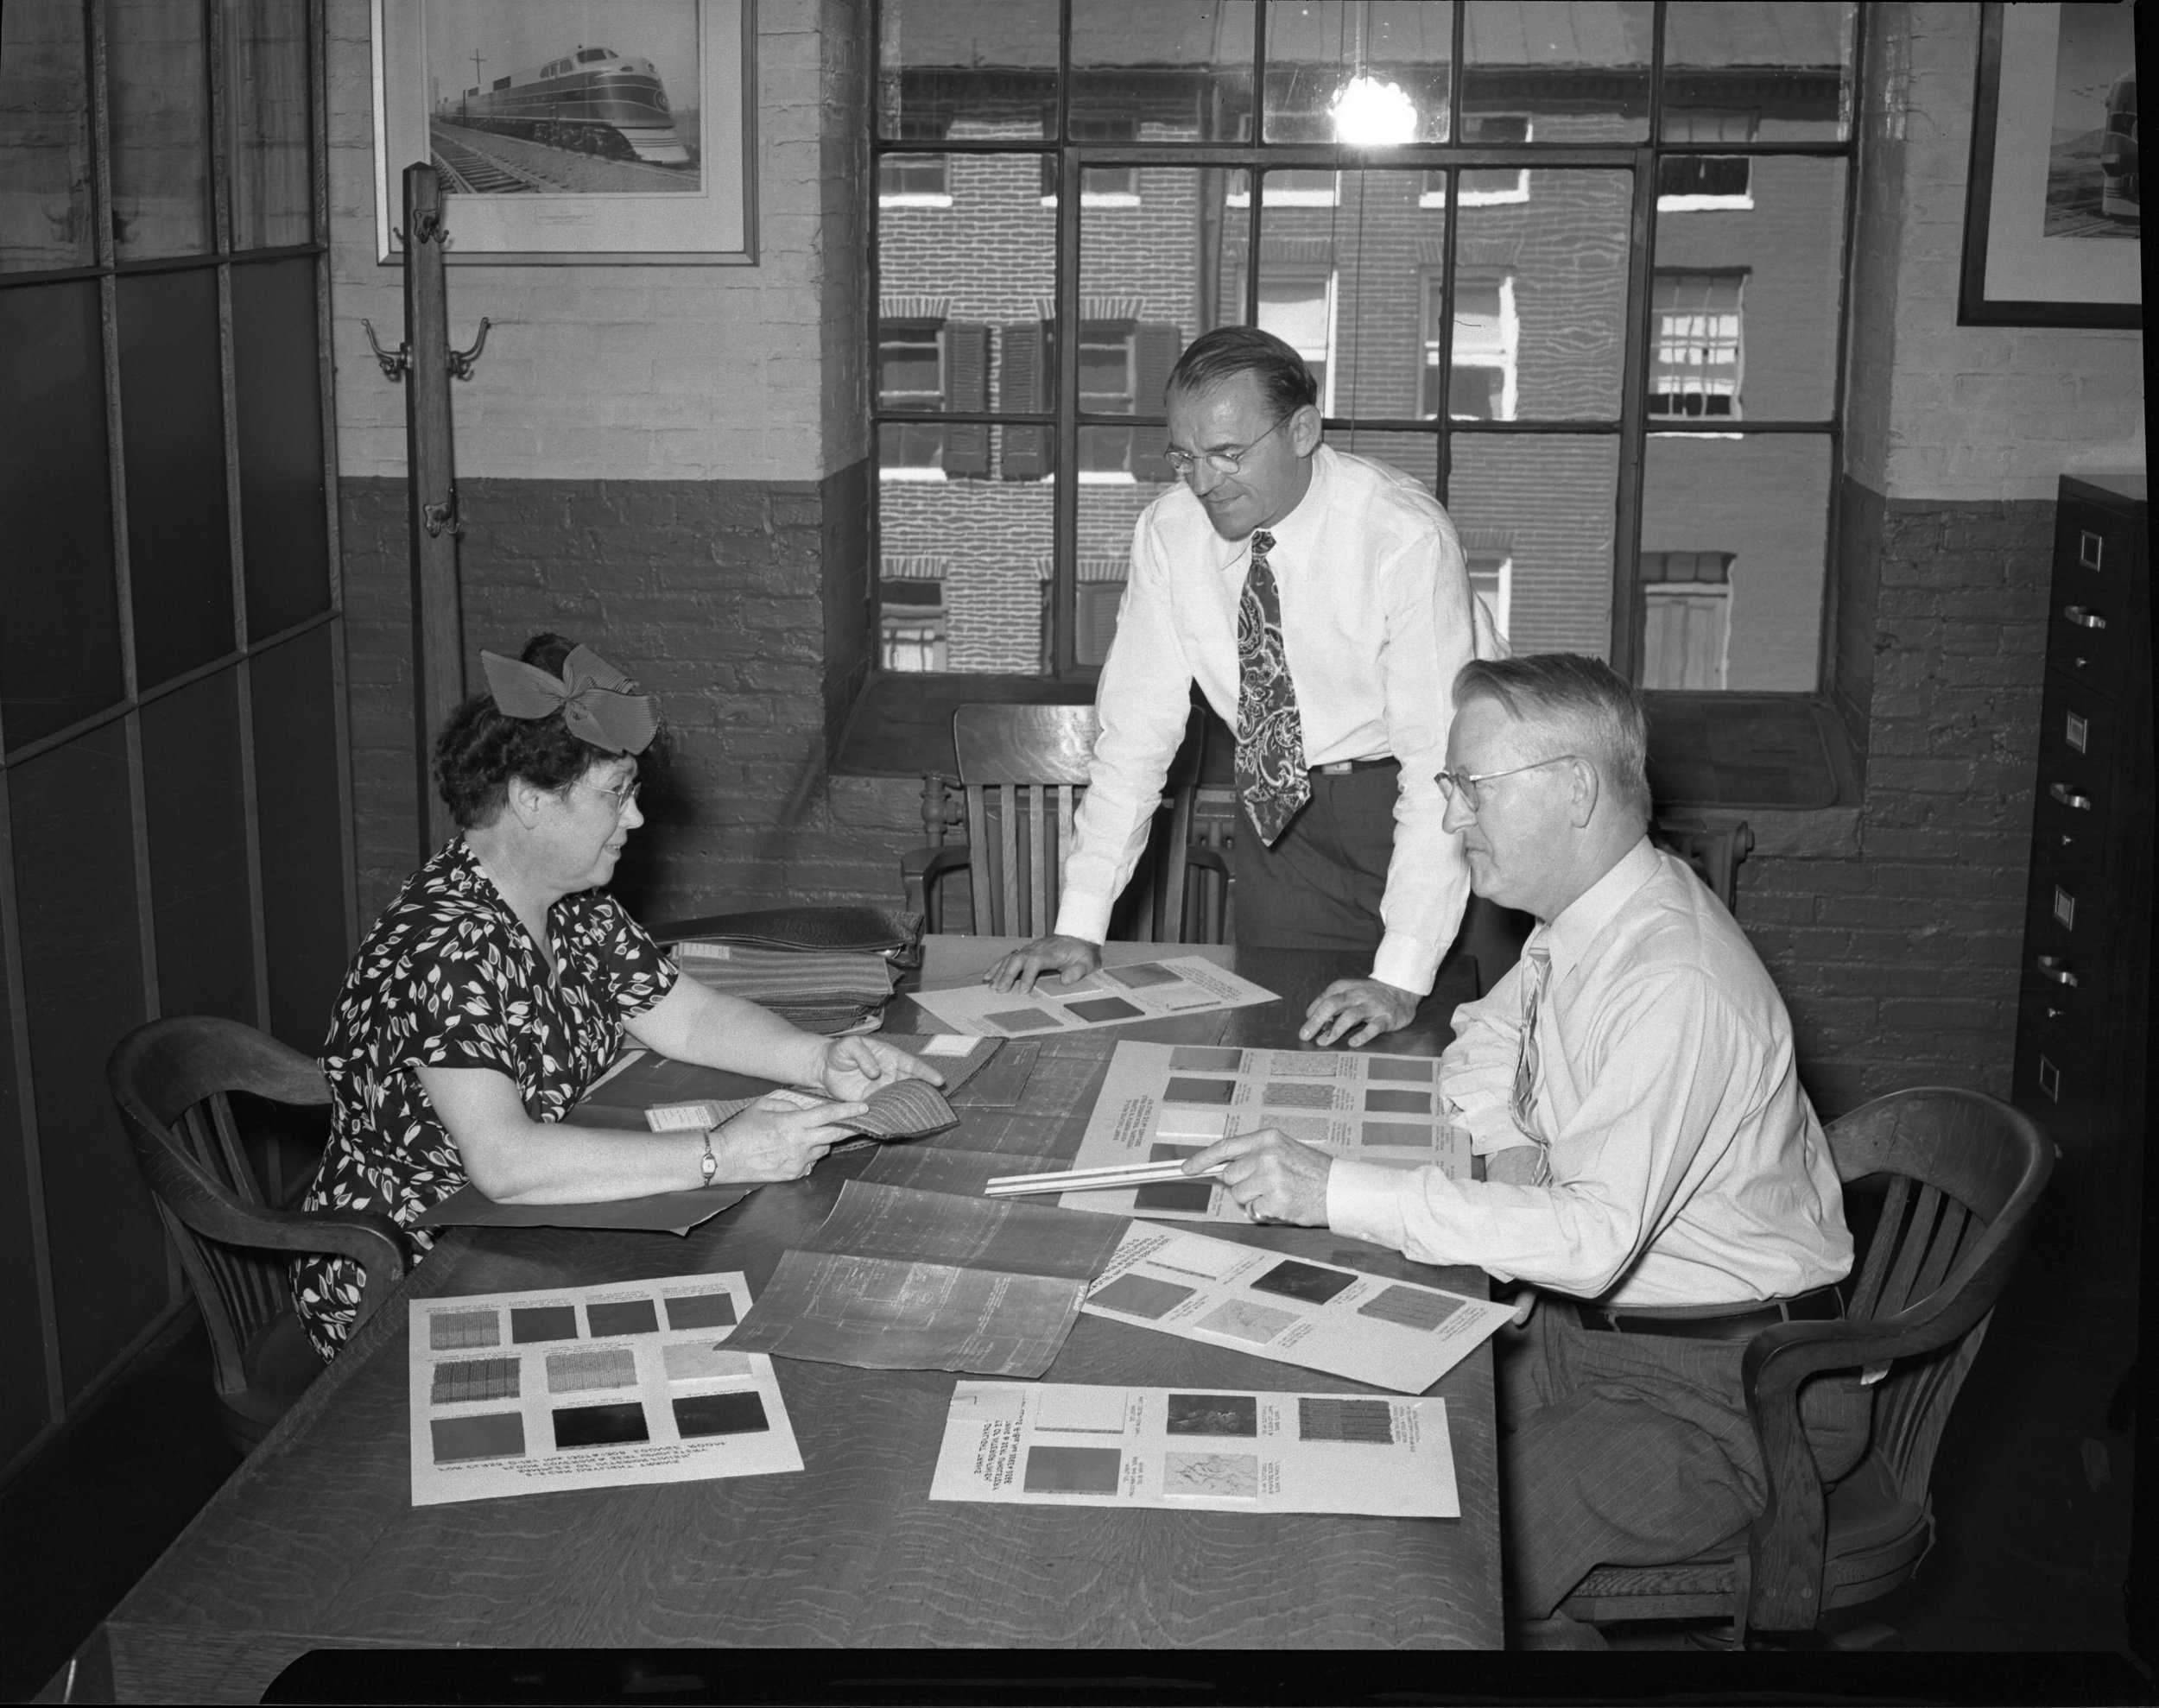 Service Engineer Olive Dennis consults with Alden B. Lawson, Assistant Engineer, Motive Power & Equipment (standing) and Frederick H. Einwaechter, Chief Engineer, Motive Power & Equipment (seated). The photograph was taken in the Mechanical Engineering Department at Mt. Clare, around 1947-1948.  Photo courtesy of the  B & O Railroad Museum